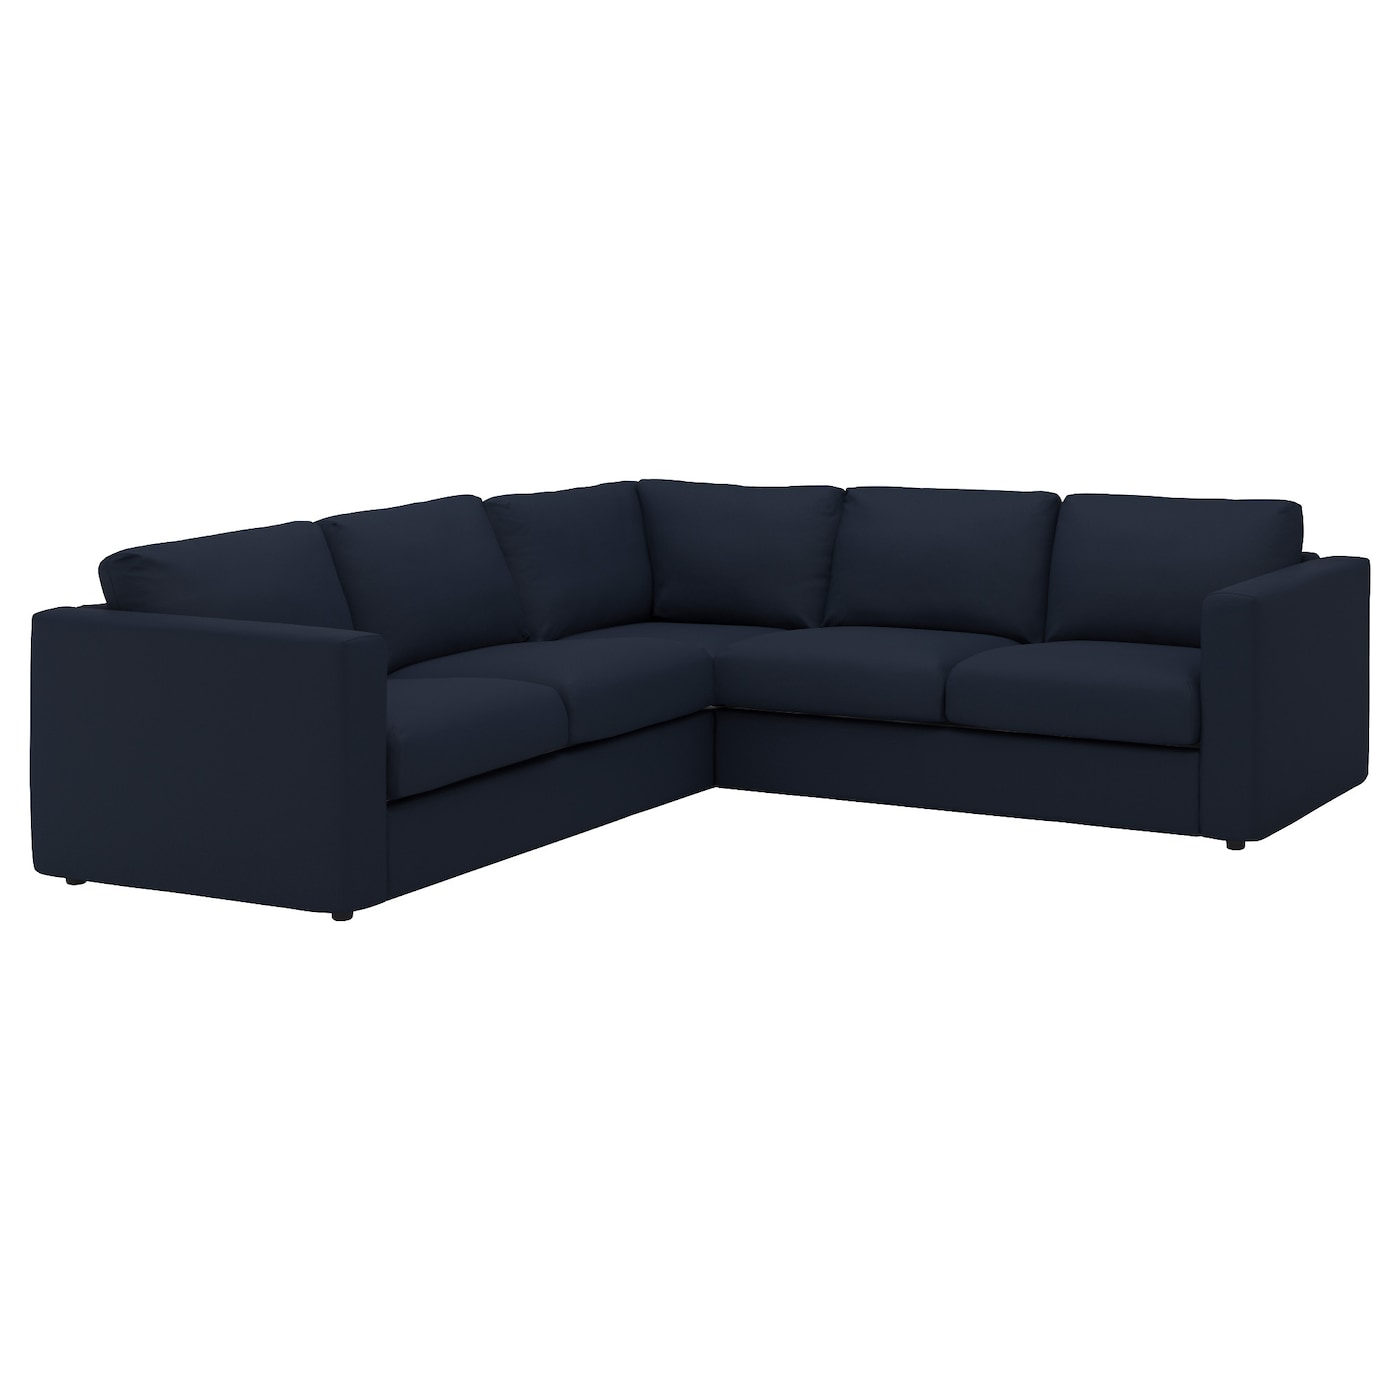 Black corner sofa ashmore leather corner sofa black right for Black corner sofa